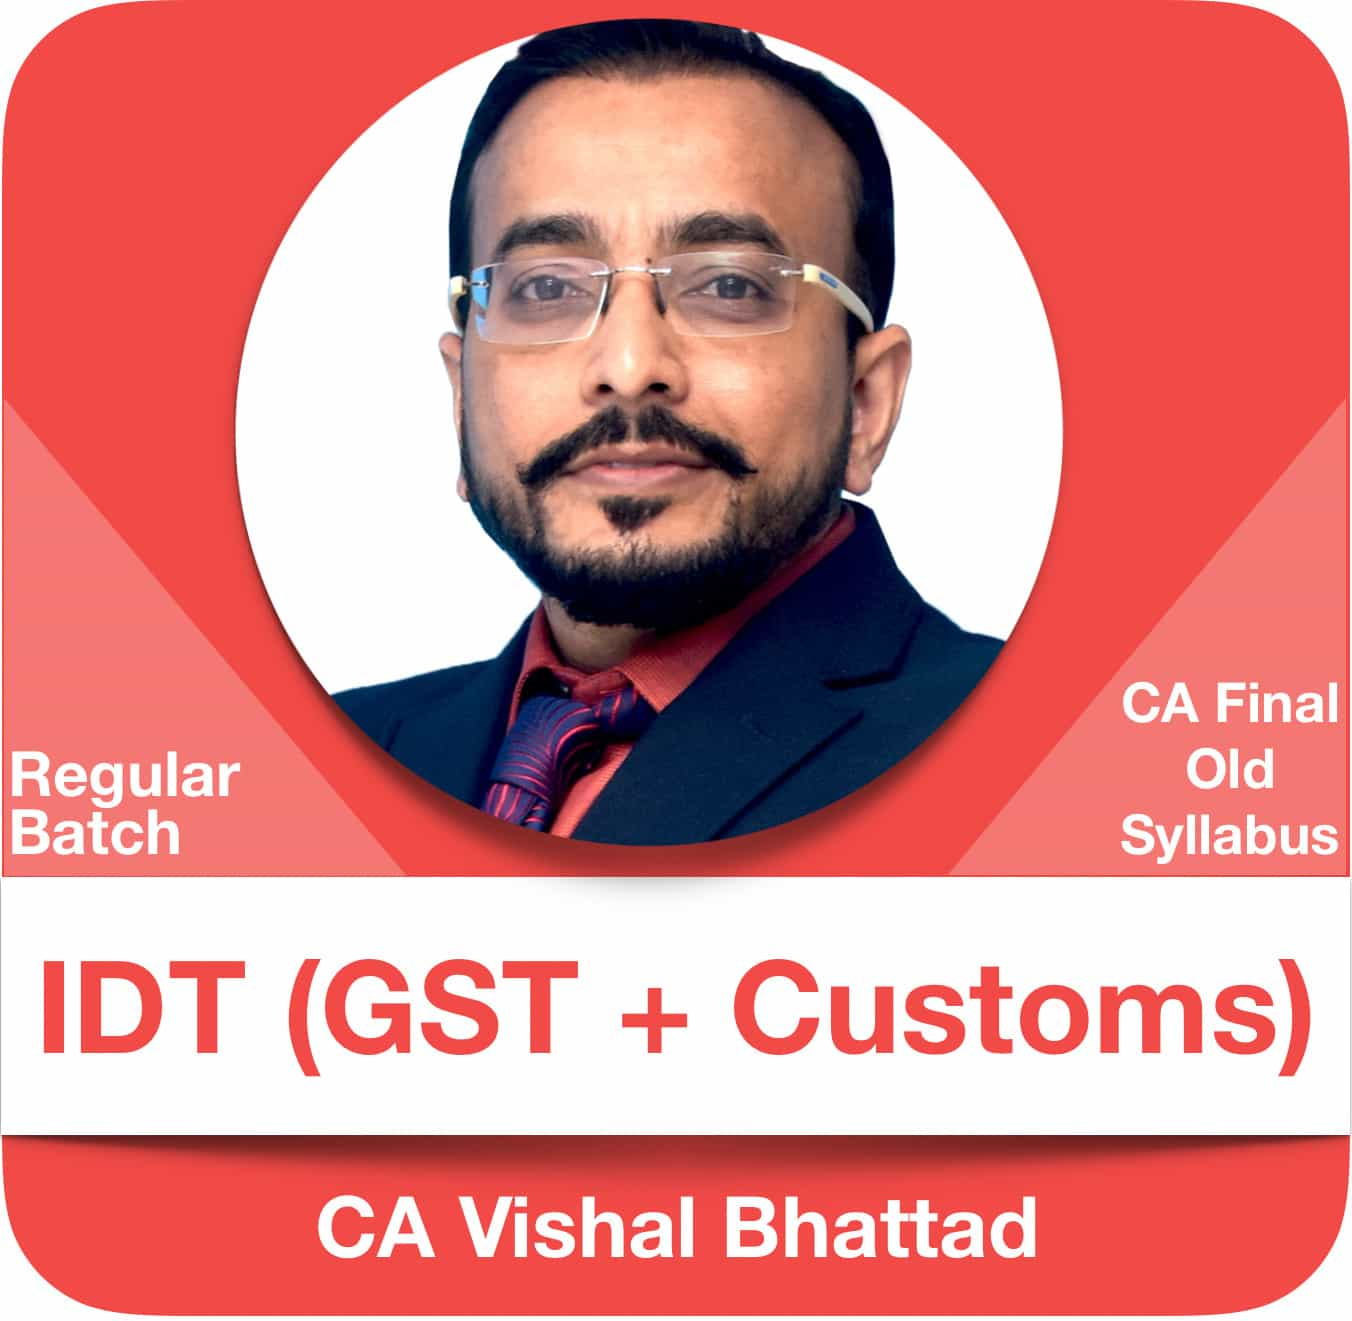 IDT (GST & Customs) Latest Regular Batch (Hindi)